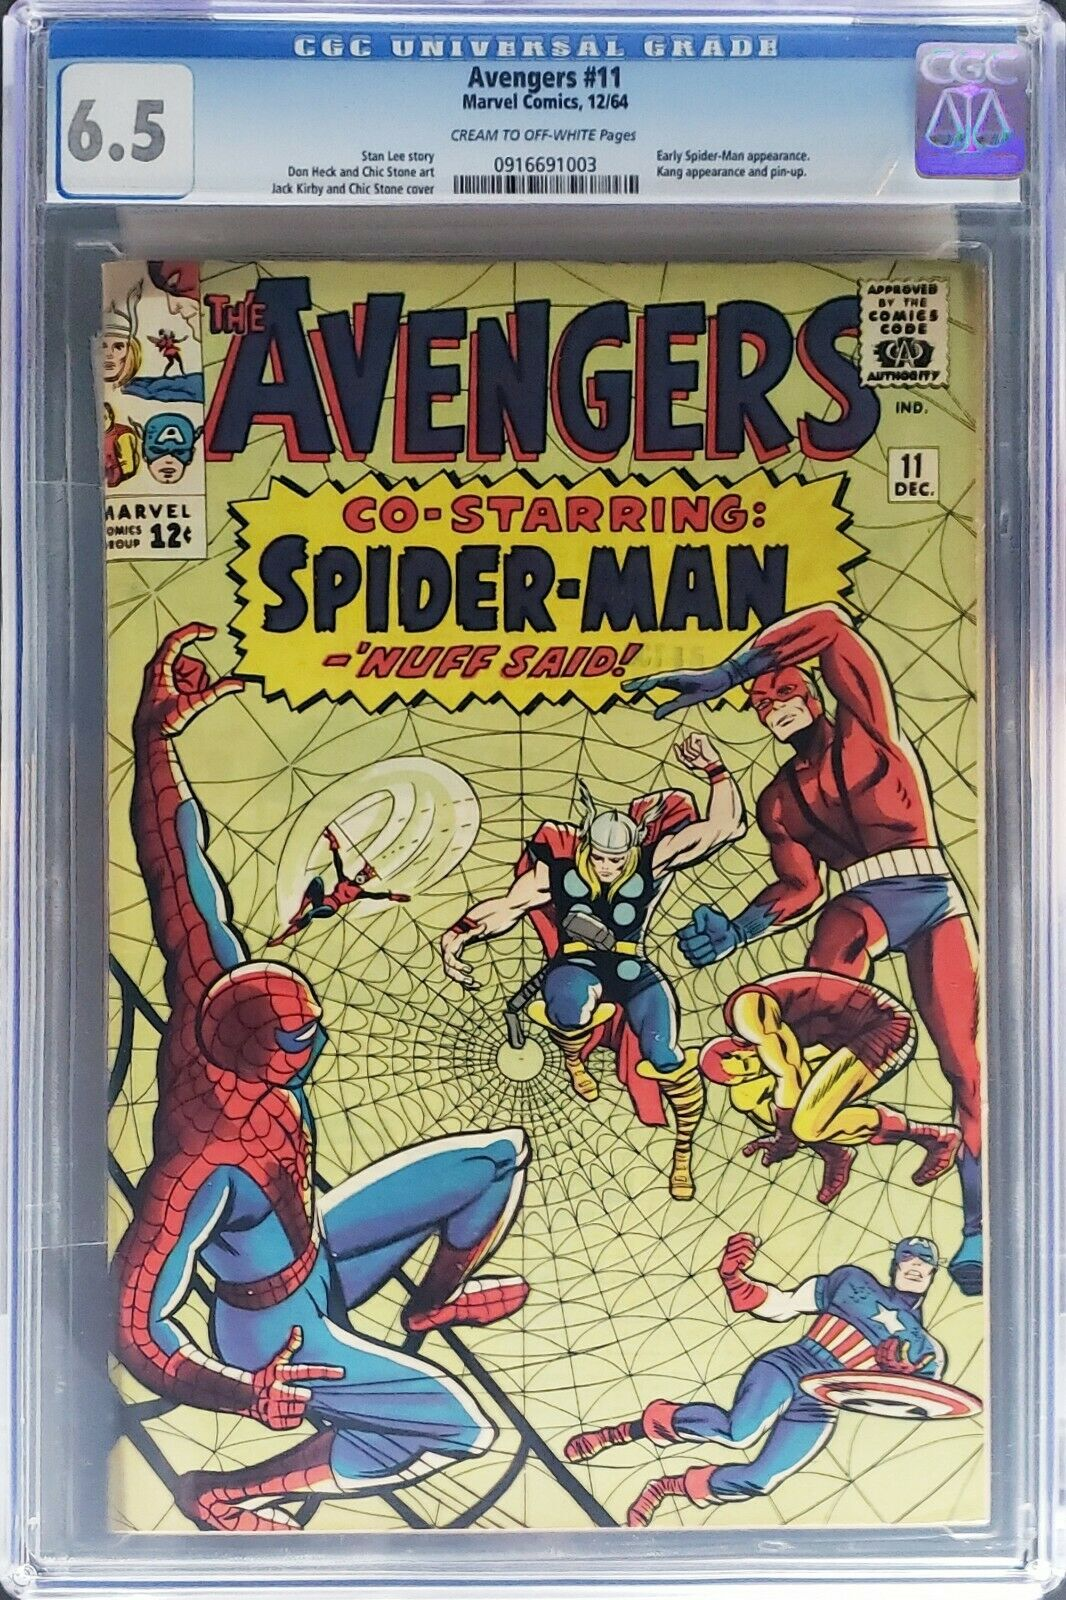 Avengers #11 CGC 6.5 - Early Spider-Man Appearance - Stan Lee Story  12/1964